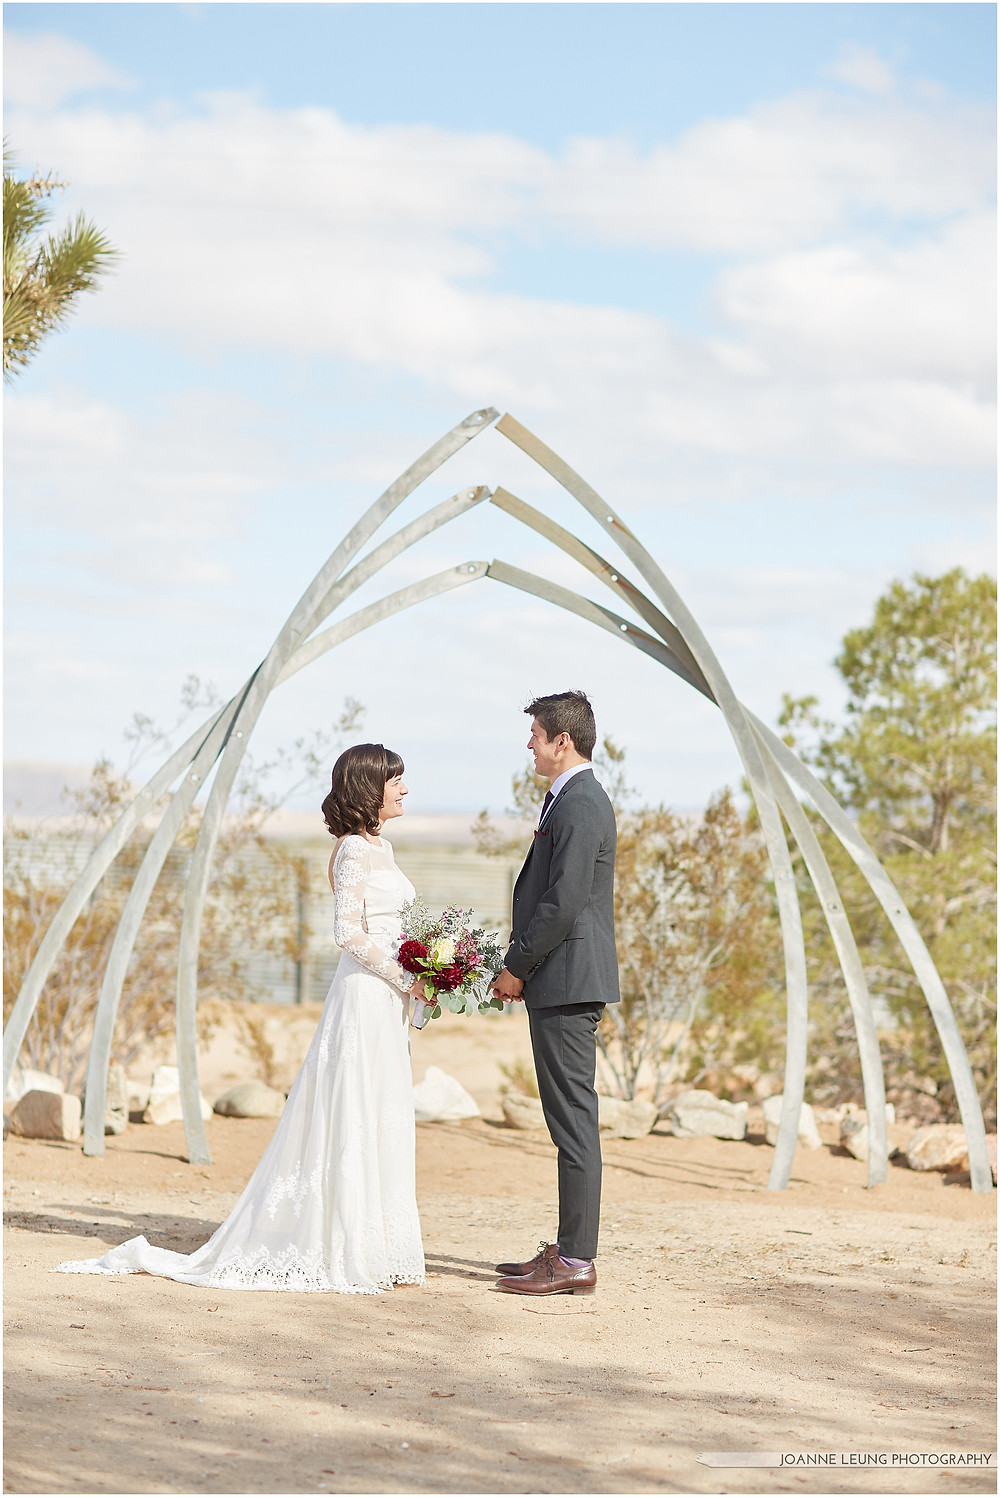 Joshua Tree Live Oak Wedding airstream arch romantic light